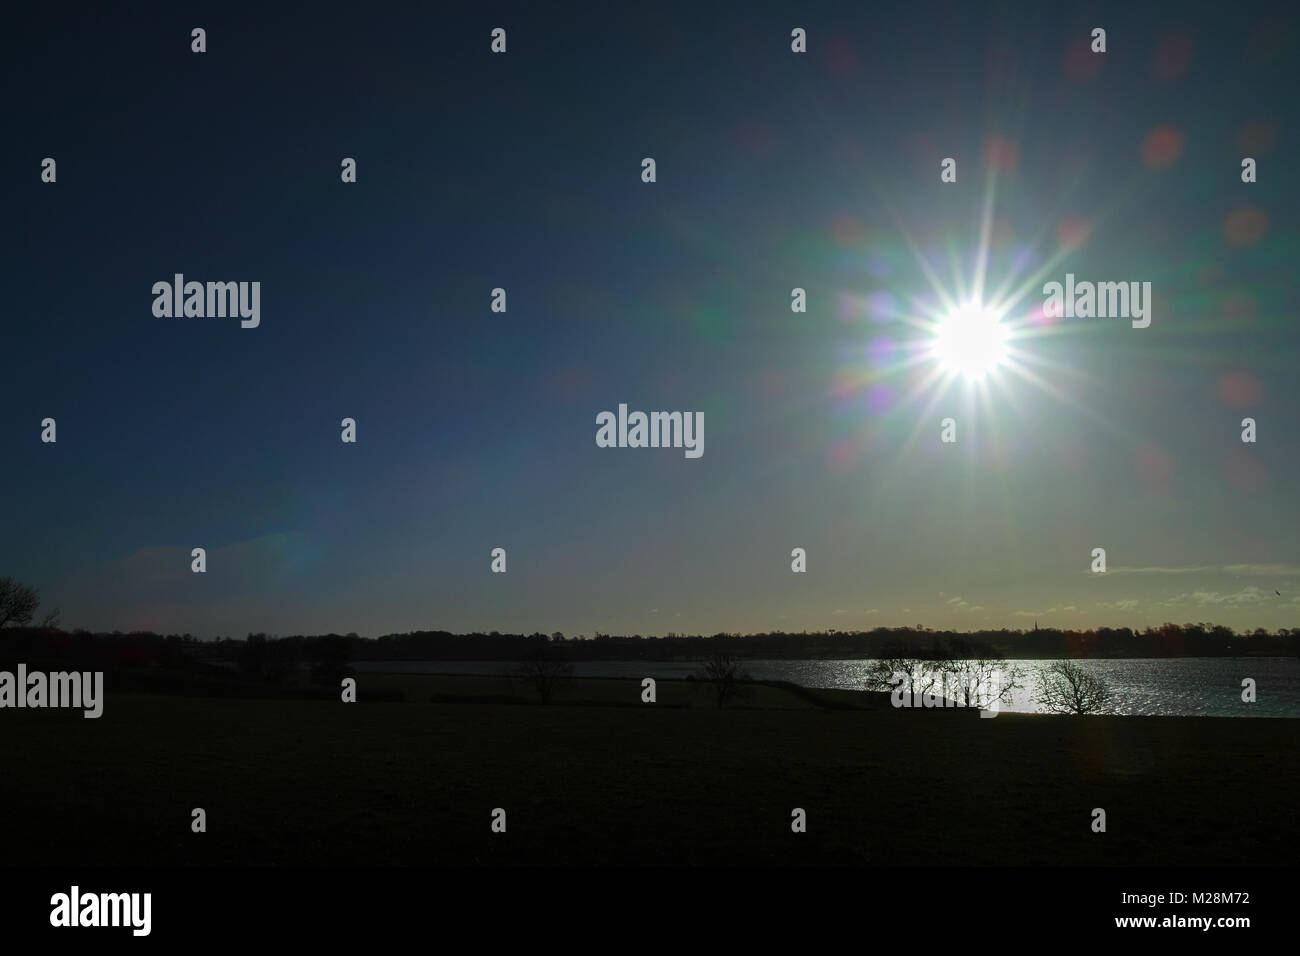 Starburst over a lake - Stock Image